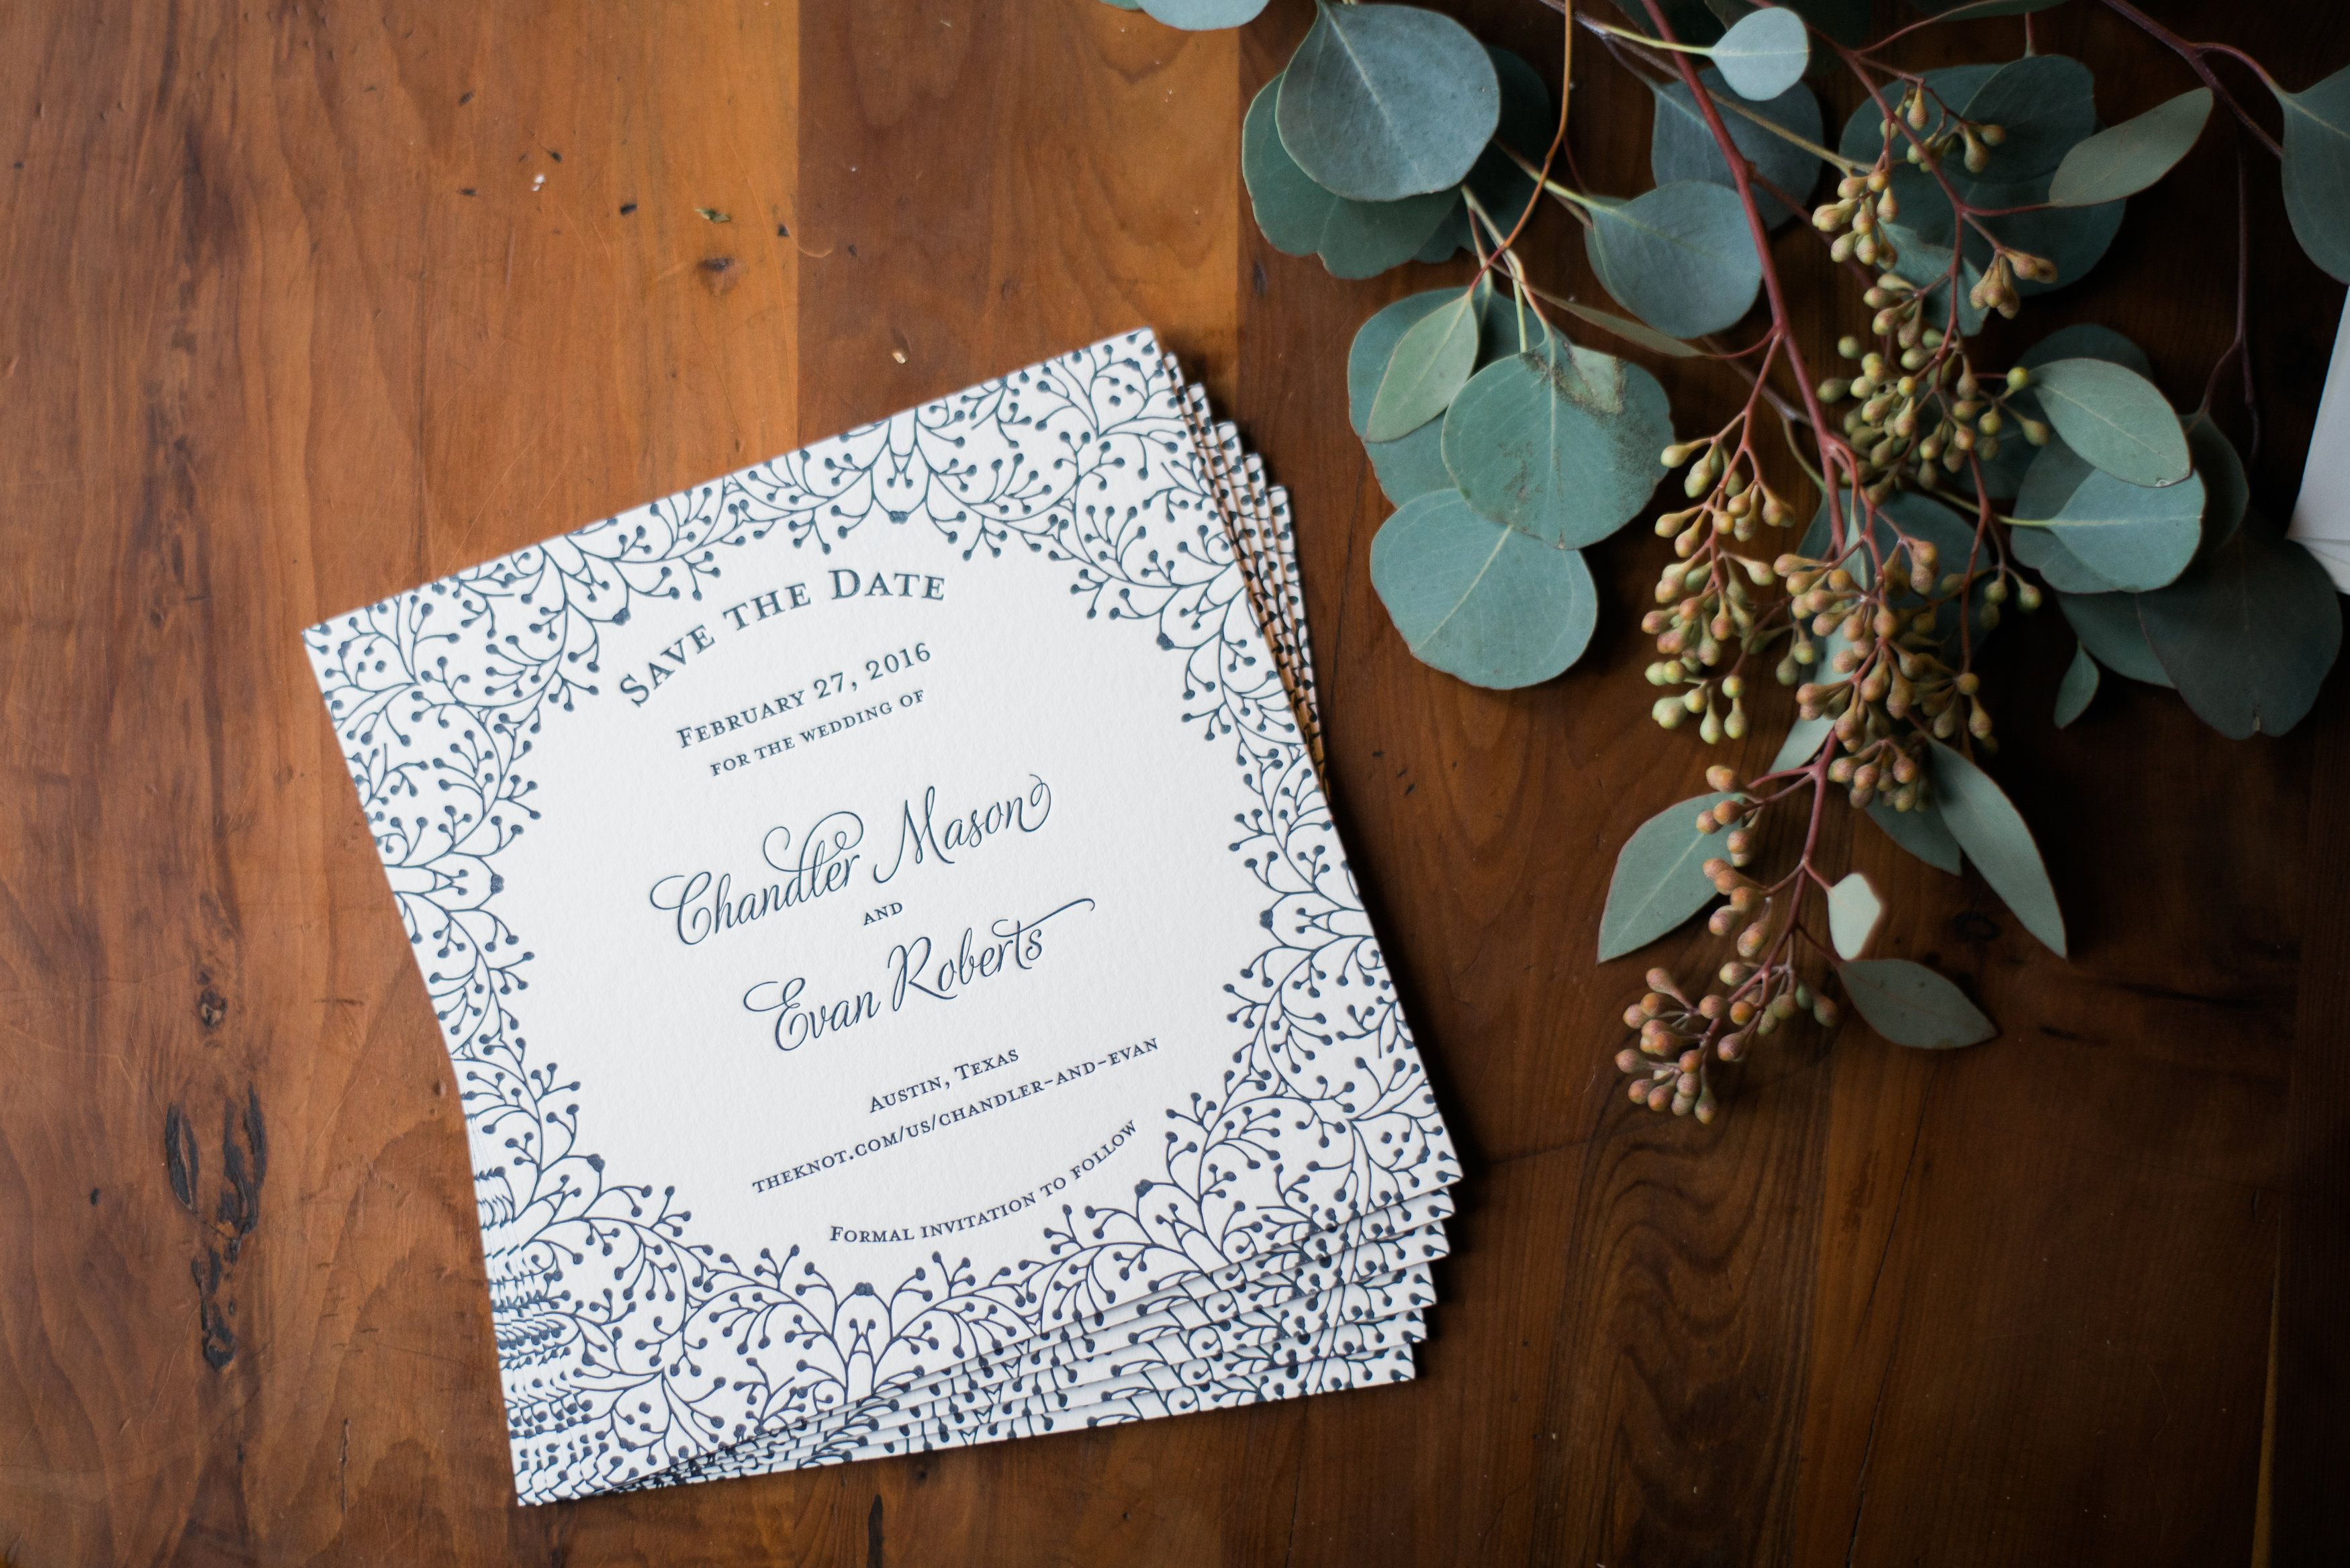 Letterpress printed save the date with purple painted edges by The Inviting Pear | Kelsey Butler Photography